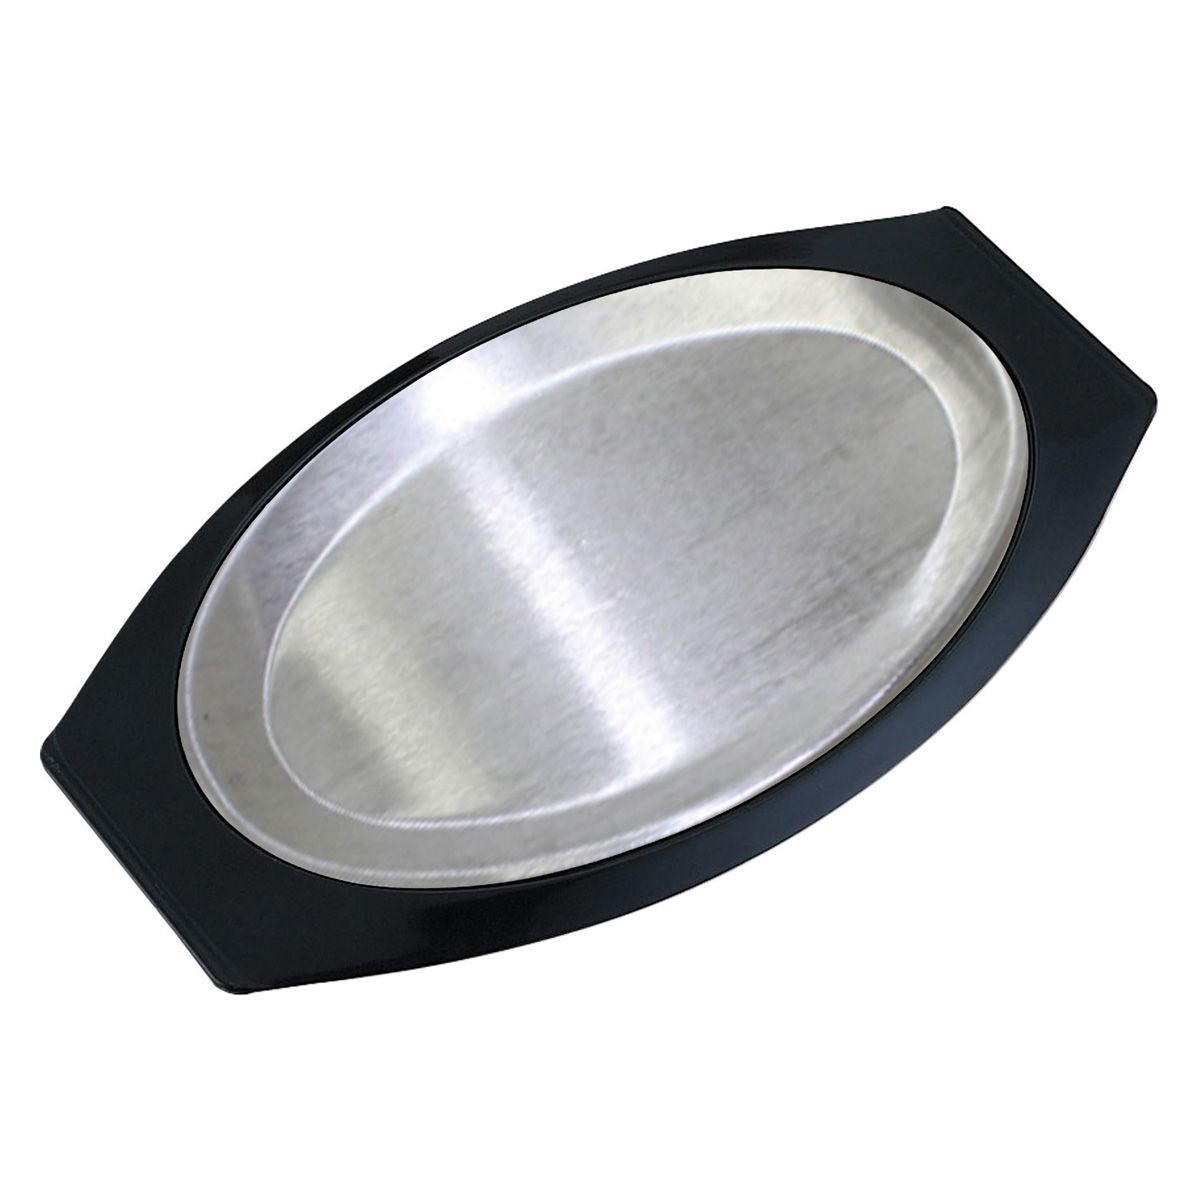 Service Ideas RO117BLAC Thermo-Plate Oval Sizzle Platter Set